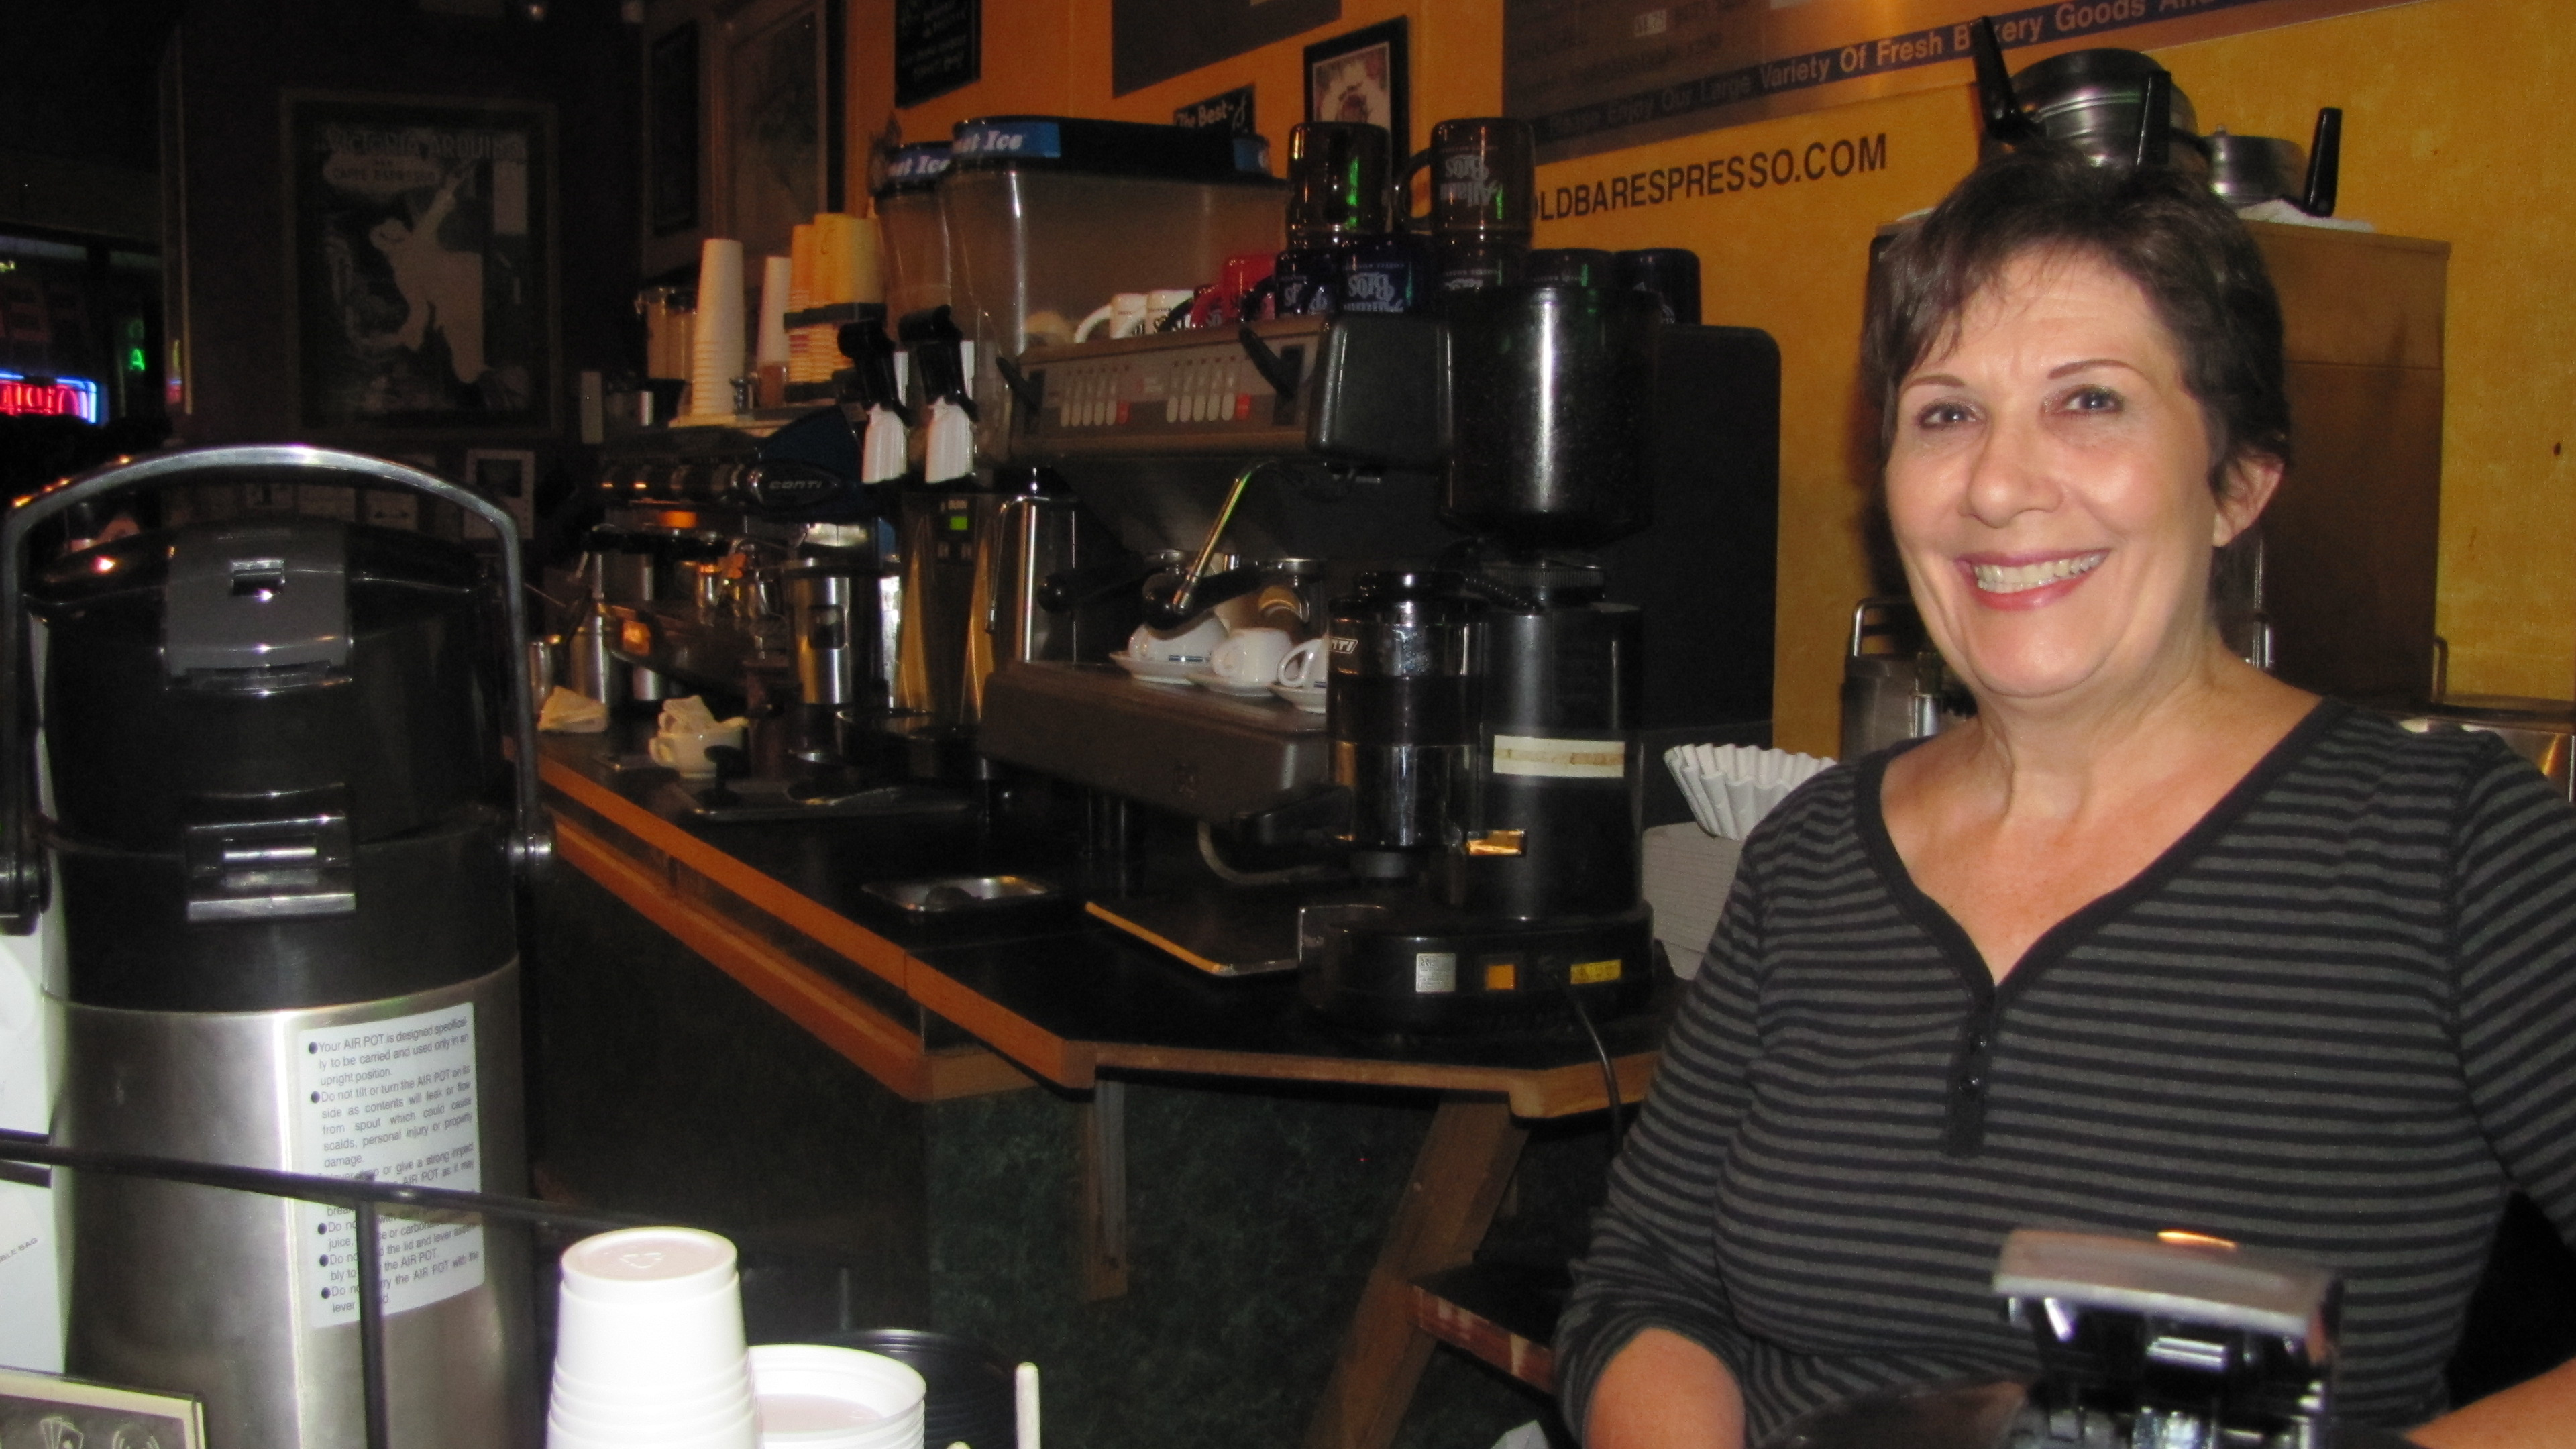 Karen Miller, Owner of Gold Bar Espresso in Tempe